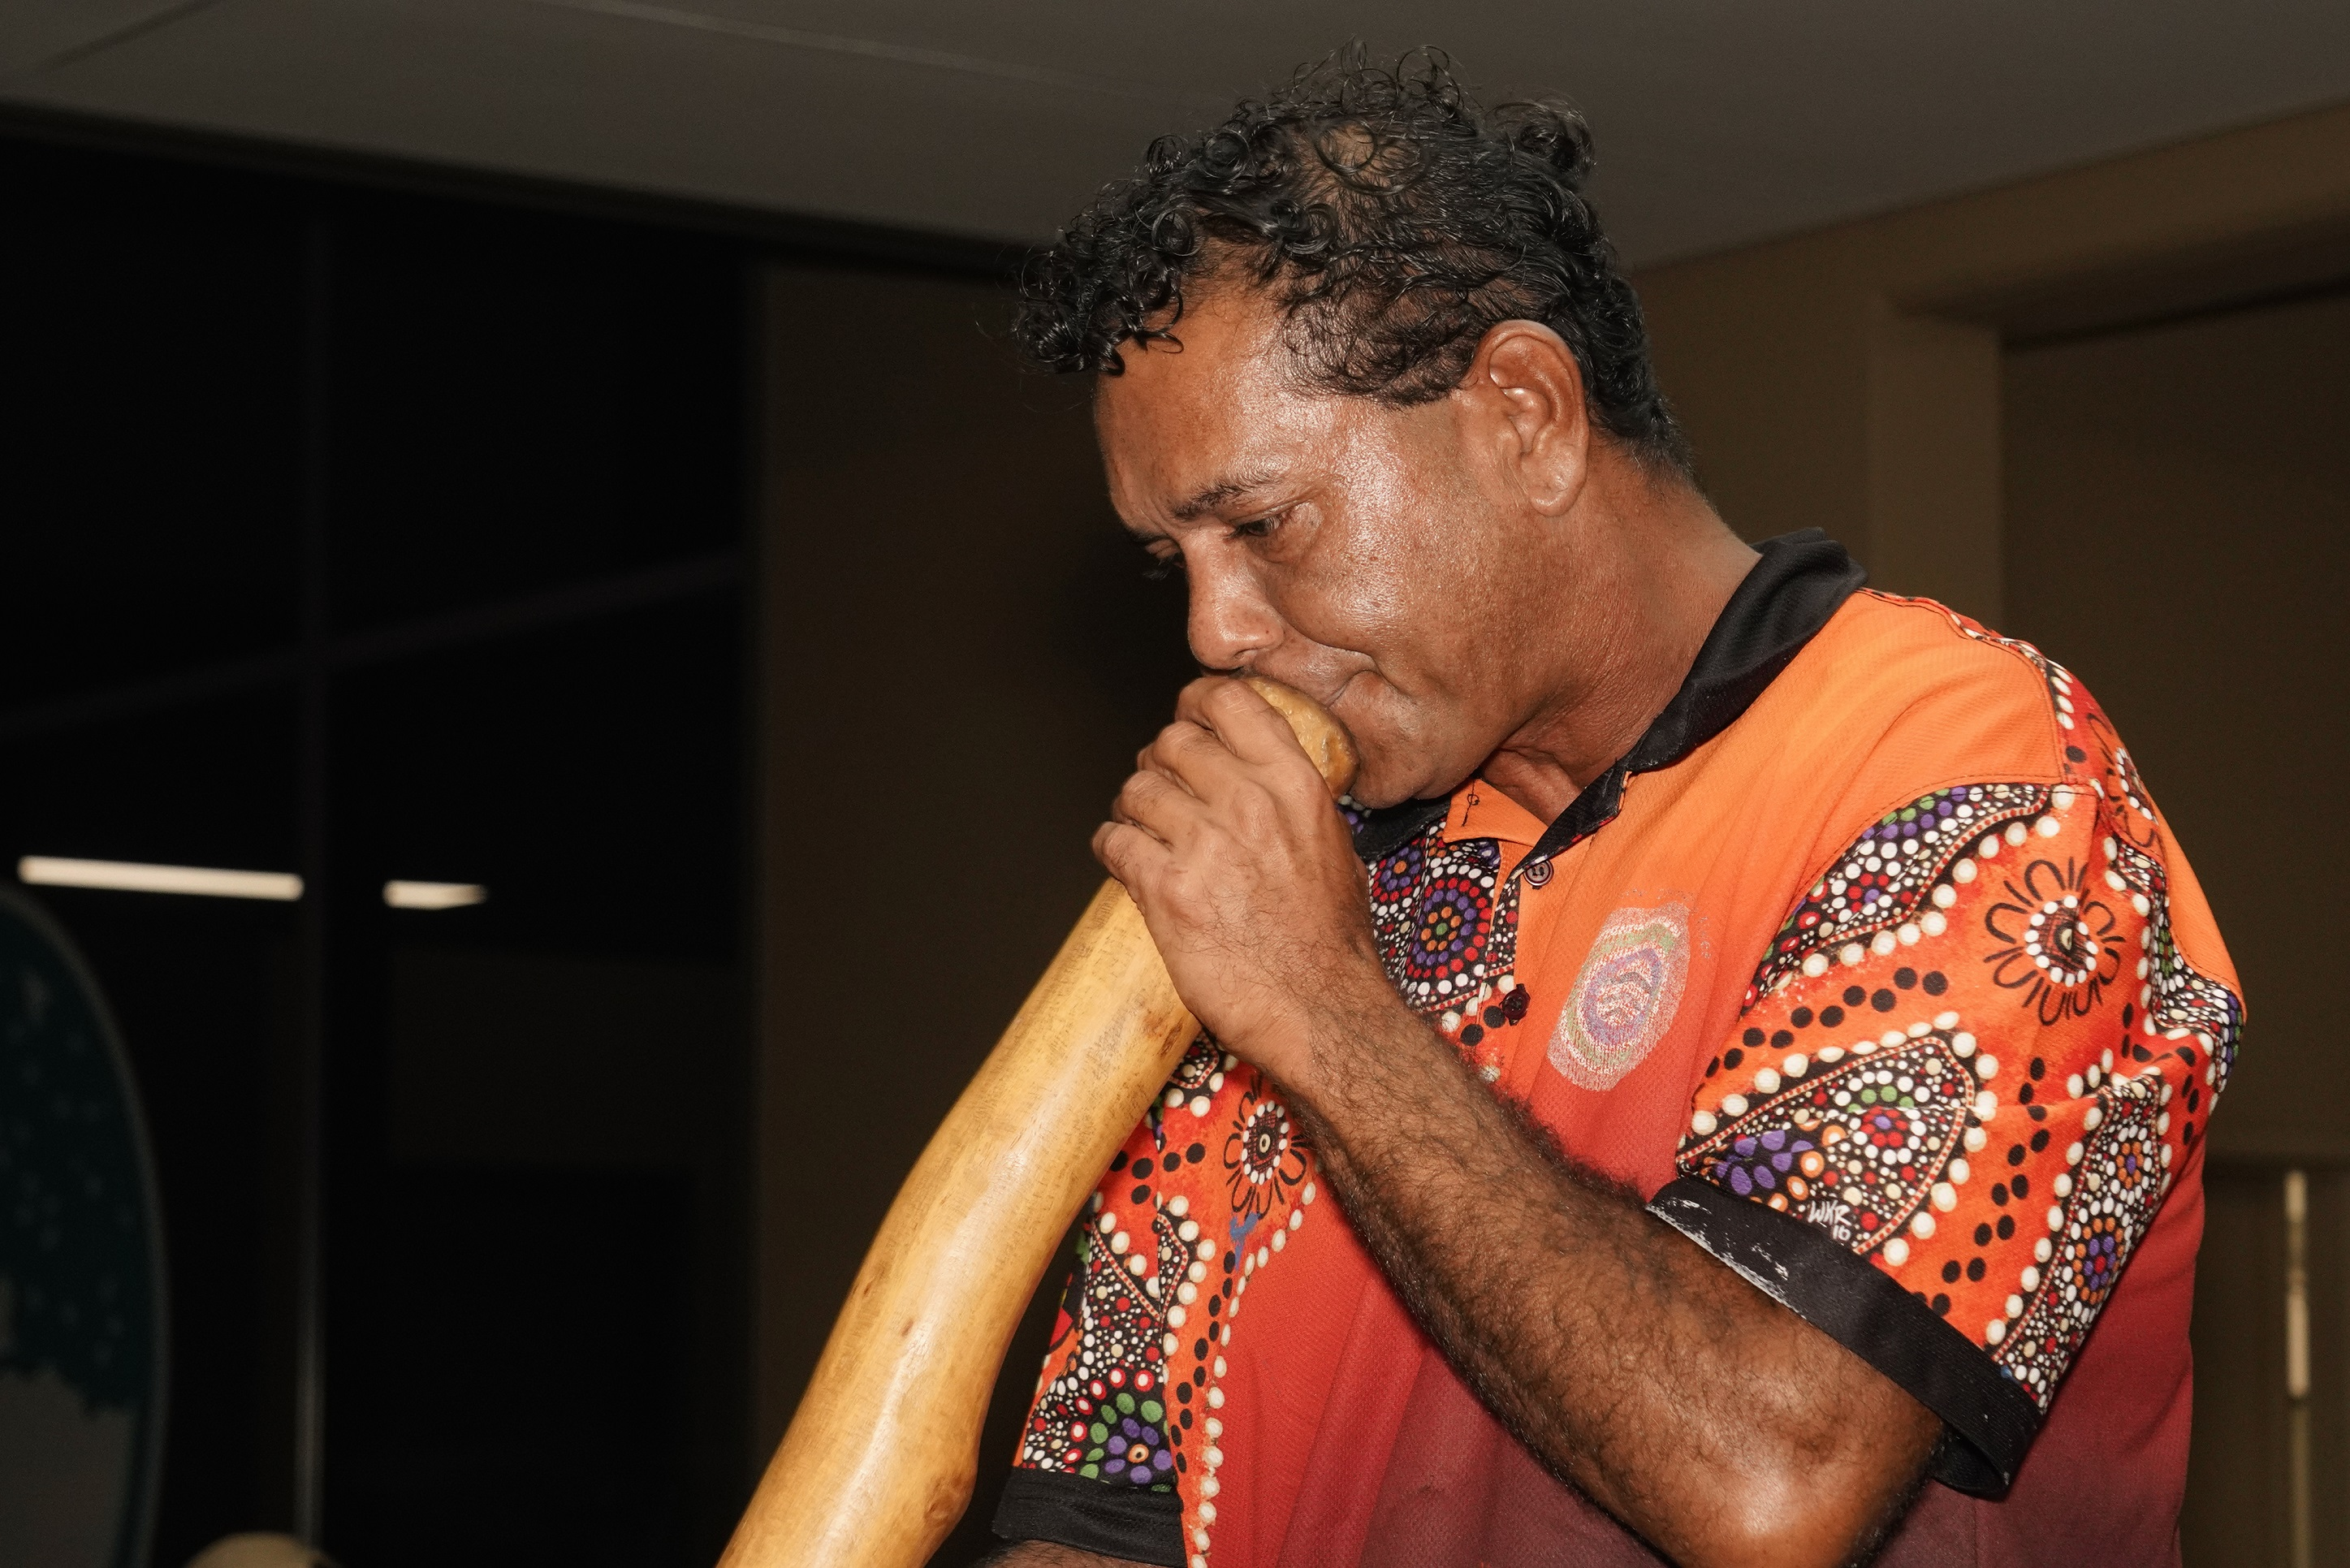 Byron Broome plays didgeridoo during the